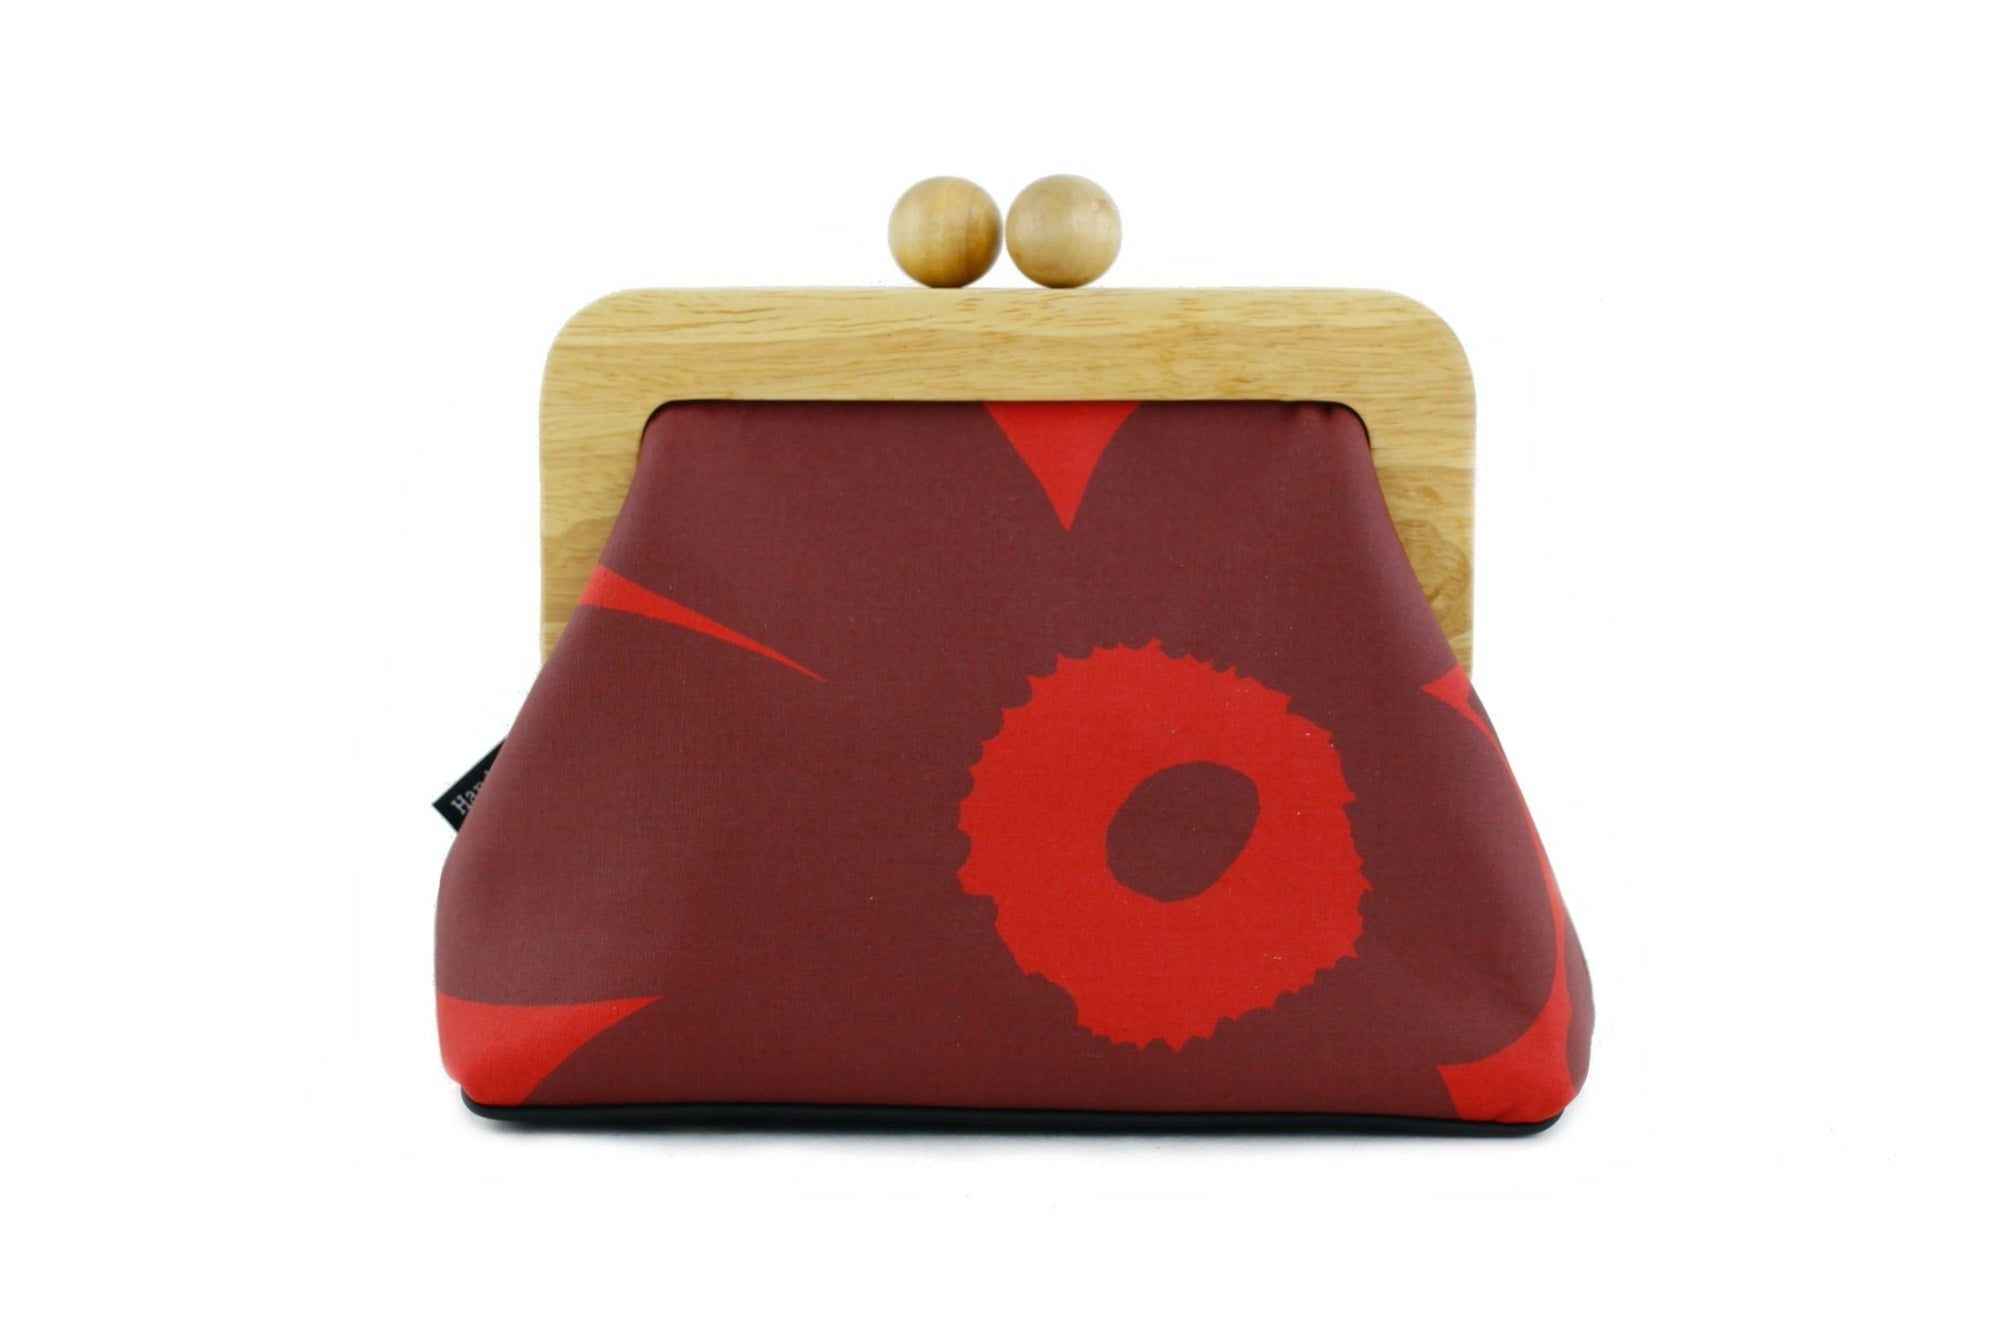 Marimekko Unikko Poppy Crimson Red Flower Clutch Bag | PINKOASIS